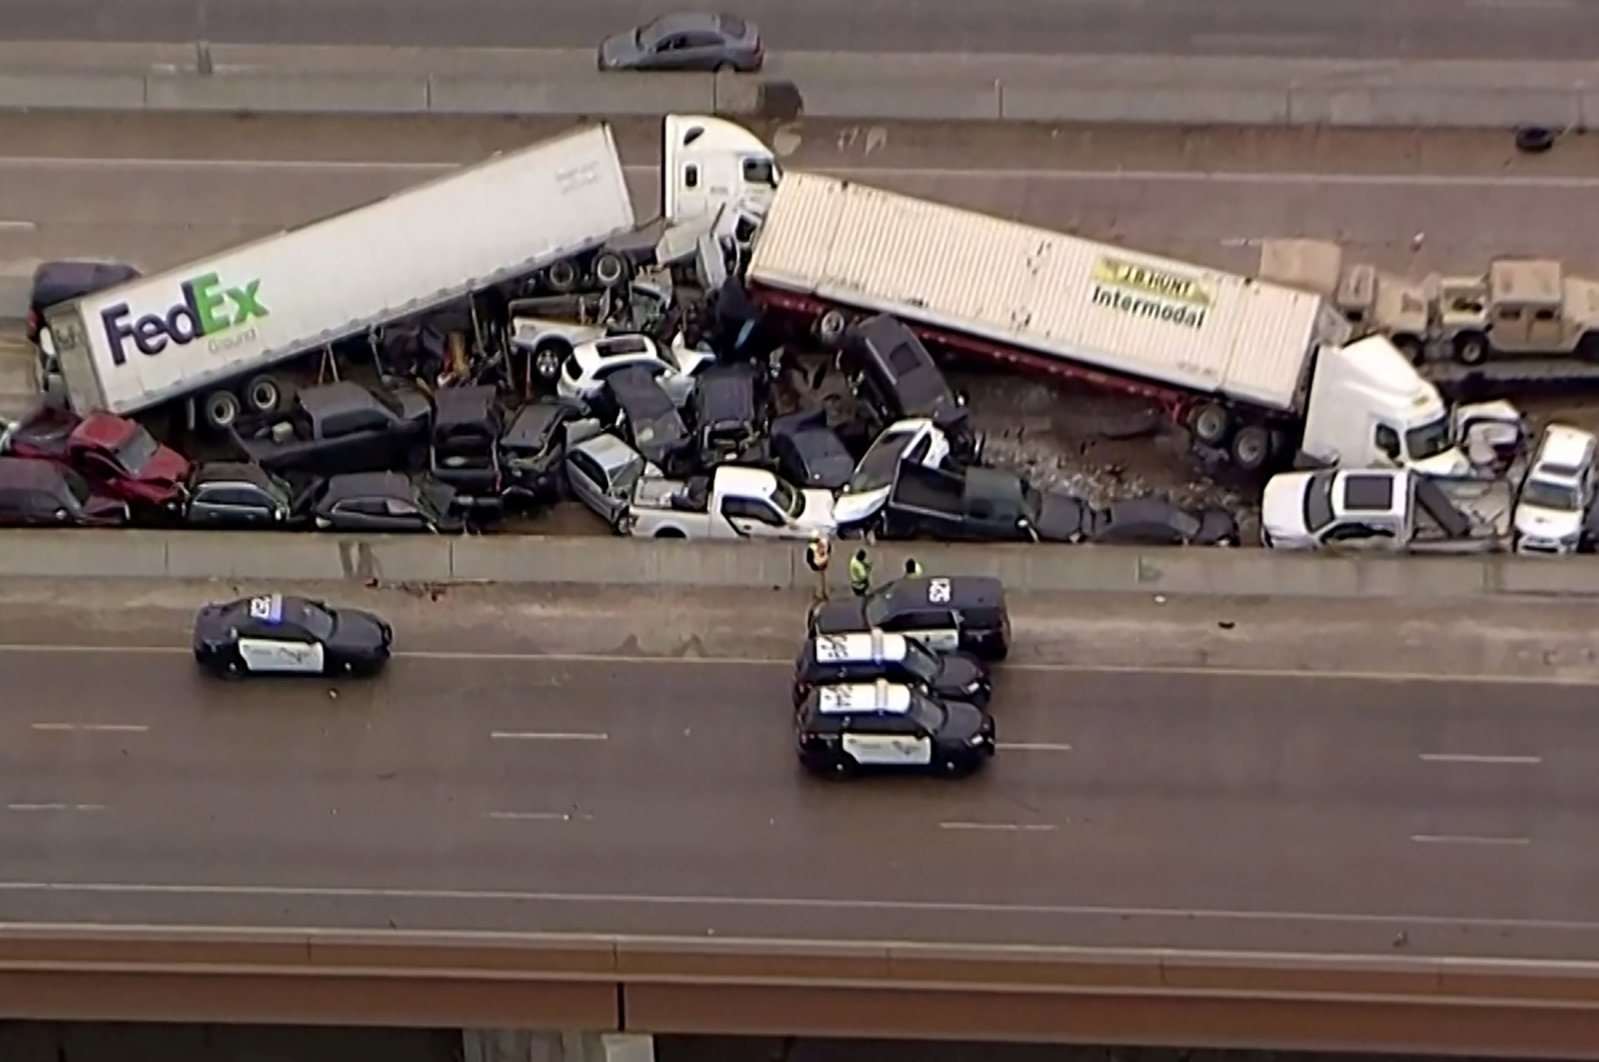 Cars and trucks are wedged together after a deadly multi-vehicle pileup on the ice-covered I-35 in a still image from video in Fort Worth, Texas, U.S. Feb.11, 2021. (Reuters Photo)